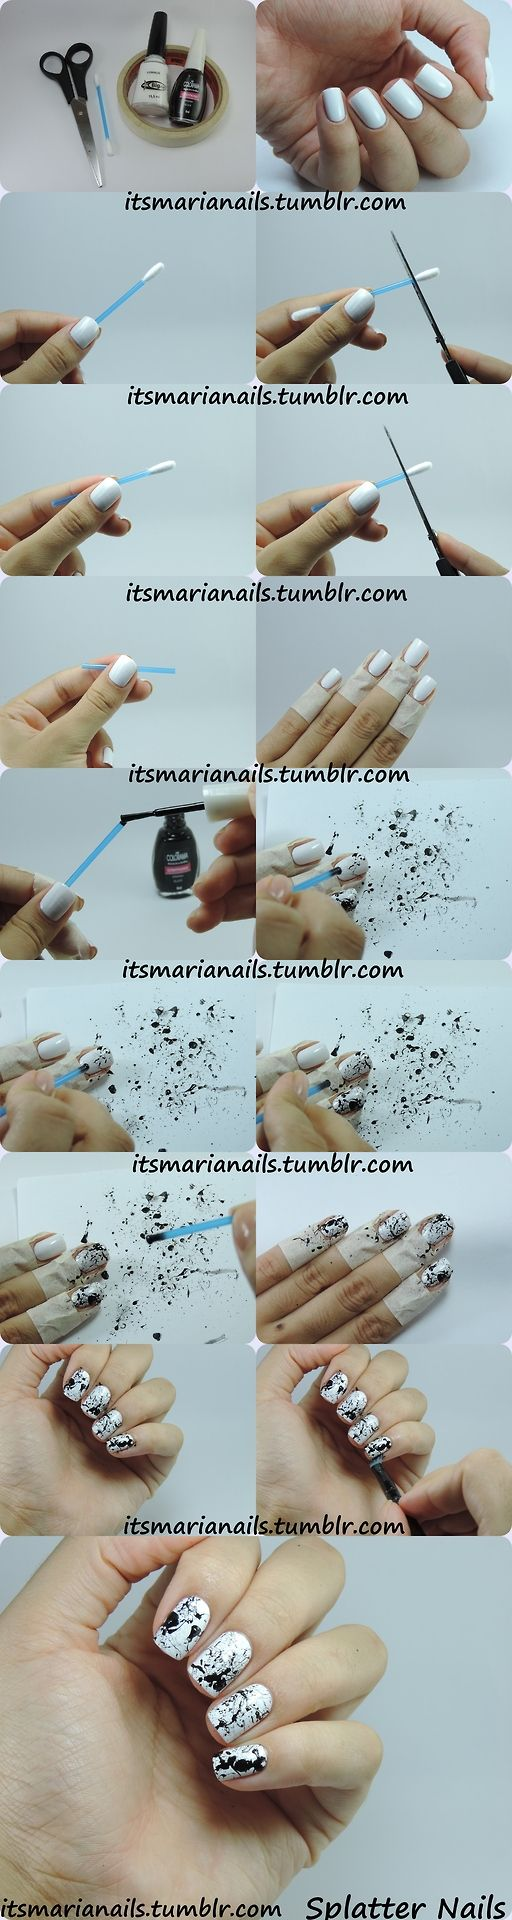 Monochrome Splatter Nail Art Tutorial https://noahxnw.tumblr.com/post/160711715781/hairstyle-ideas